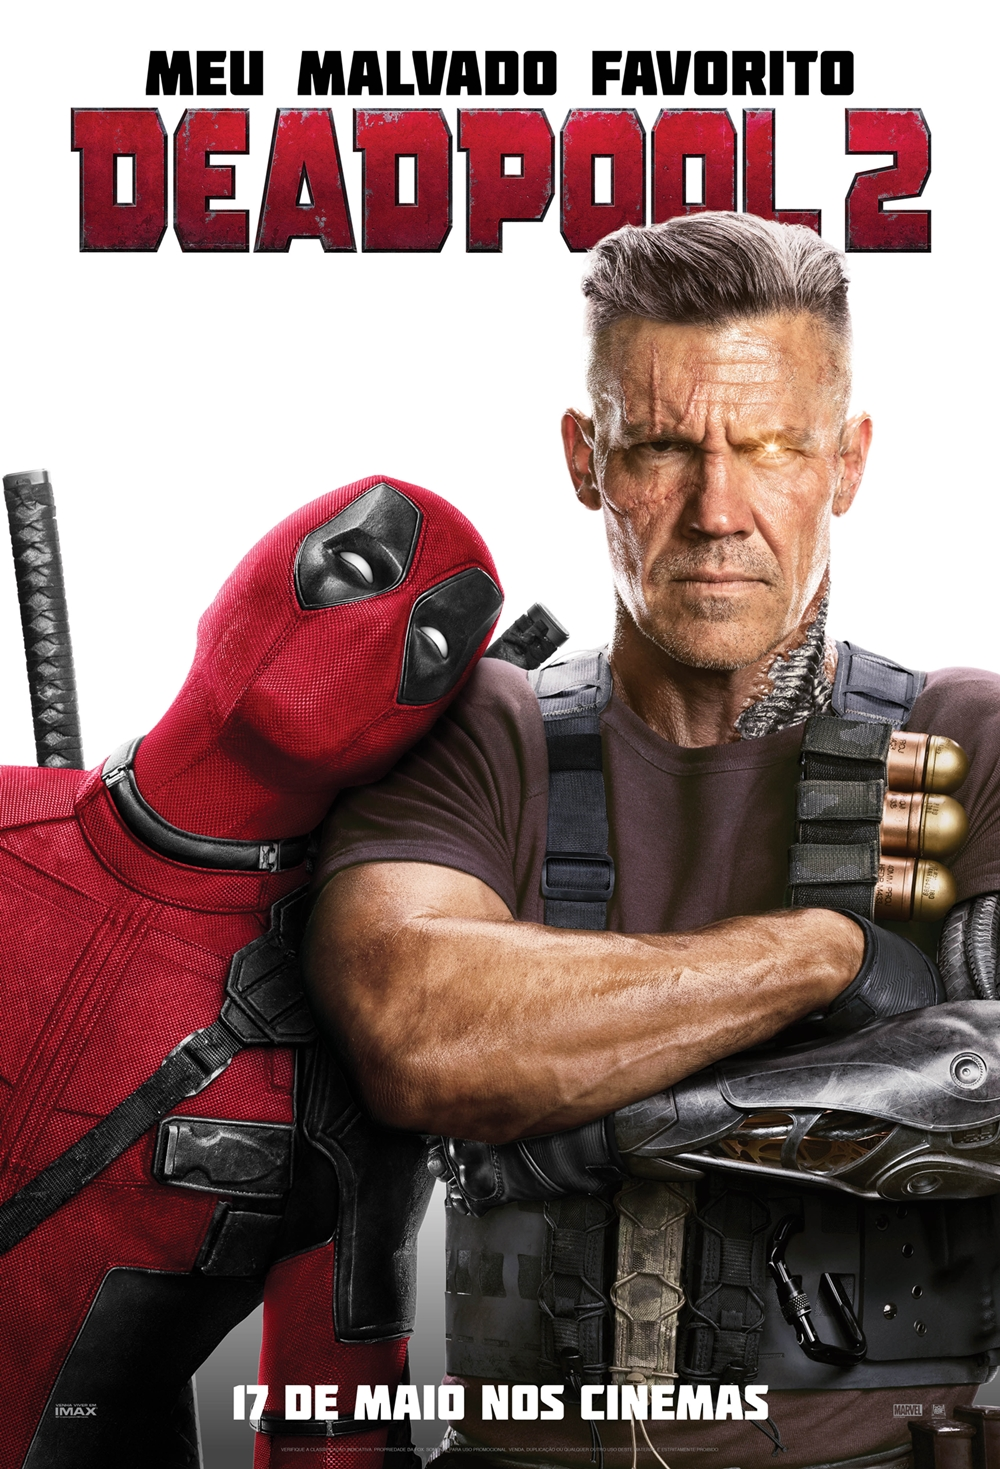 deadpool 2 filme 2018 adorocinema. Black Bedroom Furniture Sets. Home Design Ideas